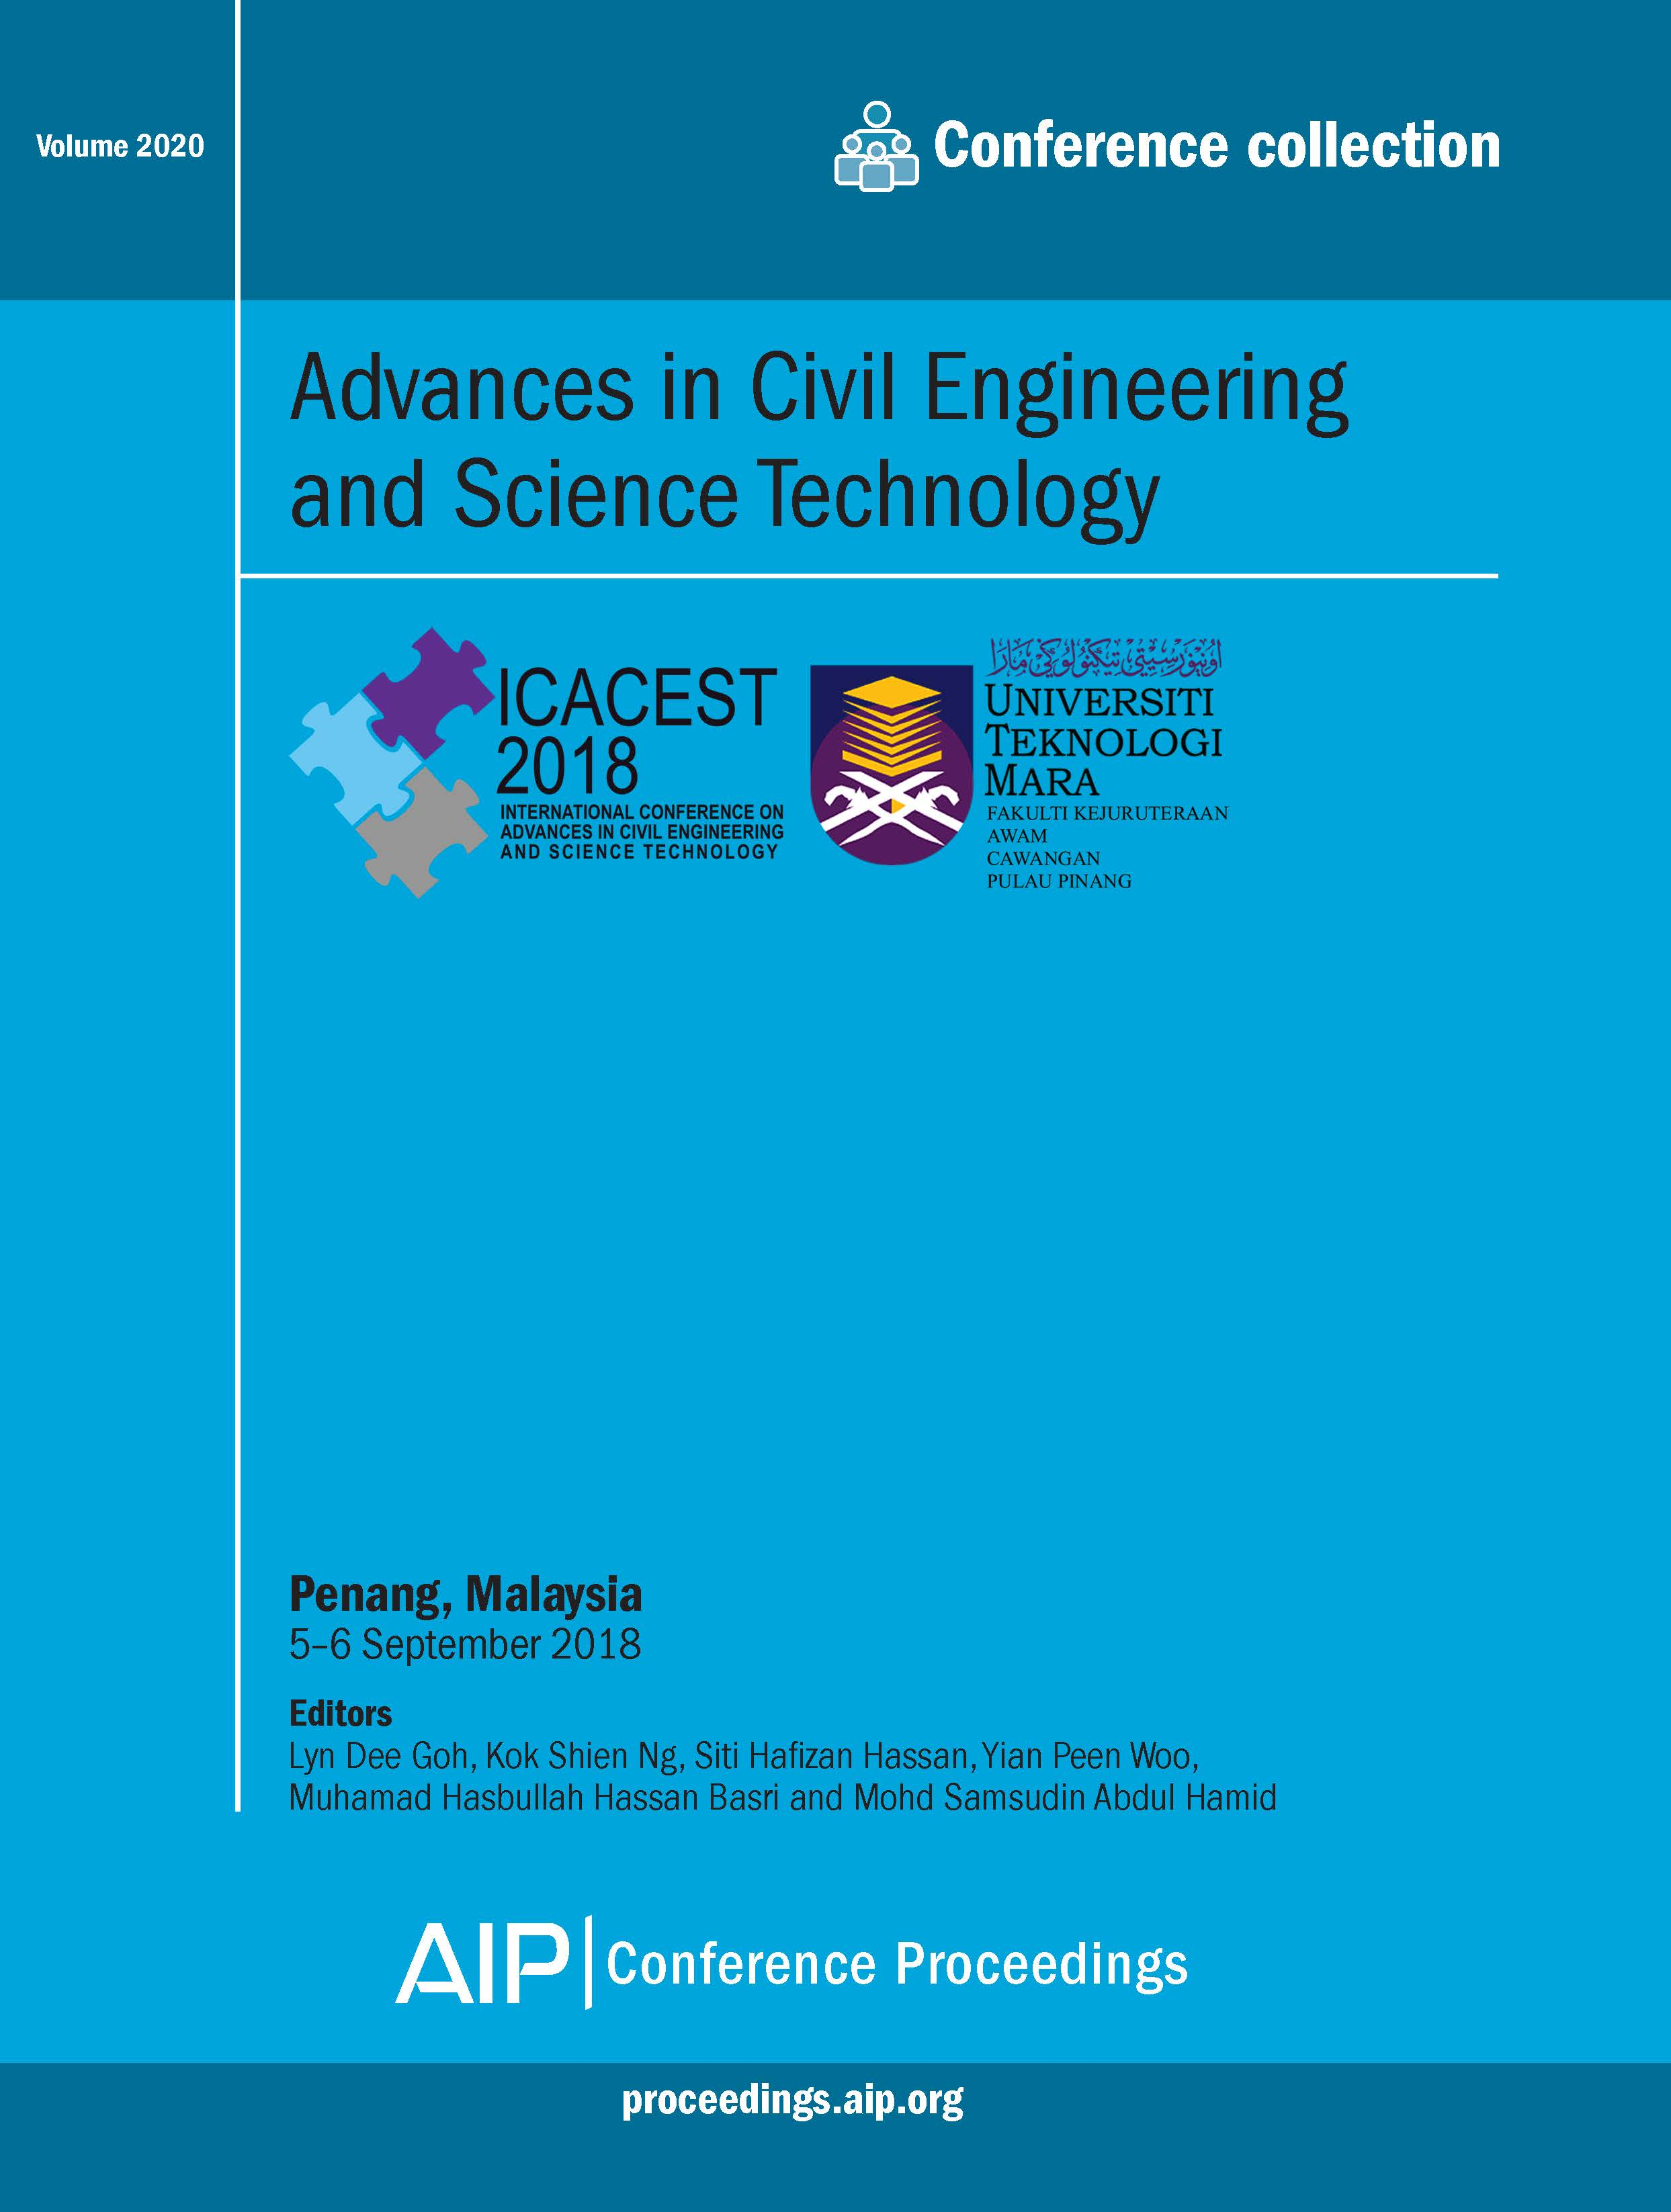 Volume 2020: Advances in Civil Engineering and Science Technology